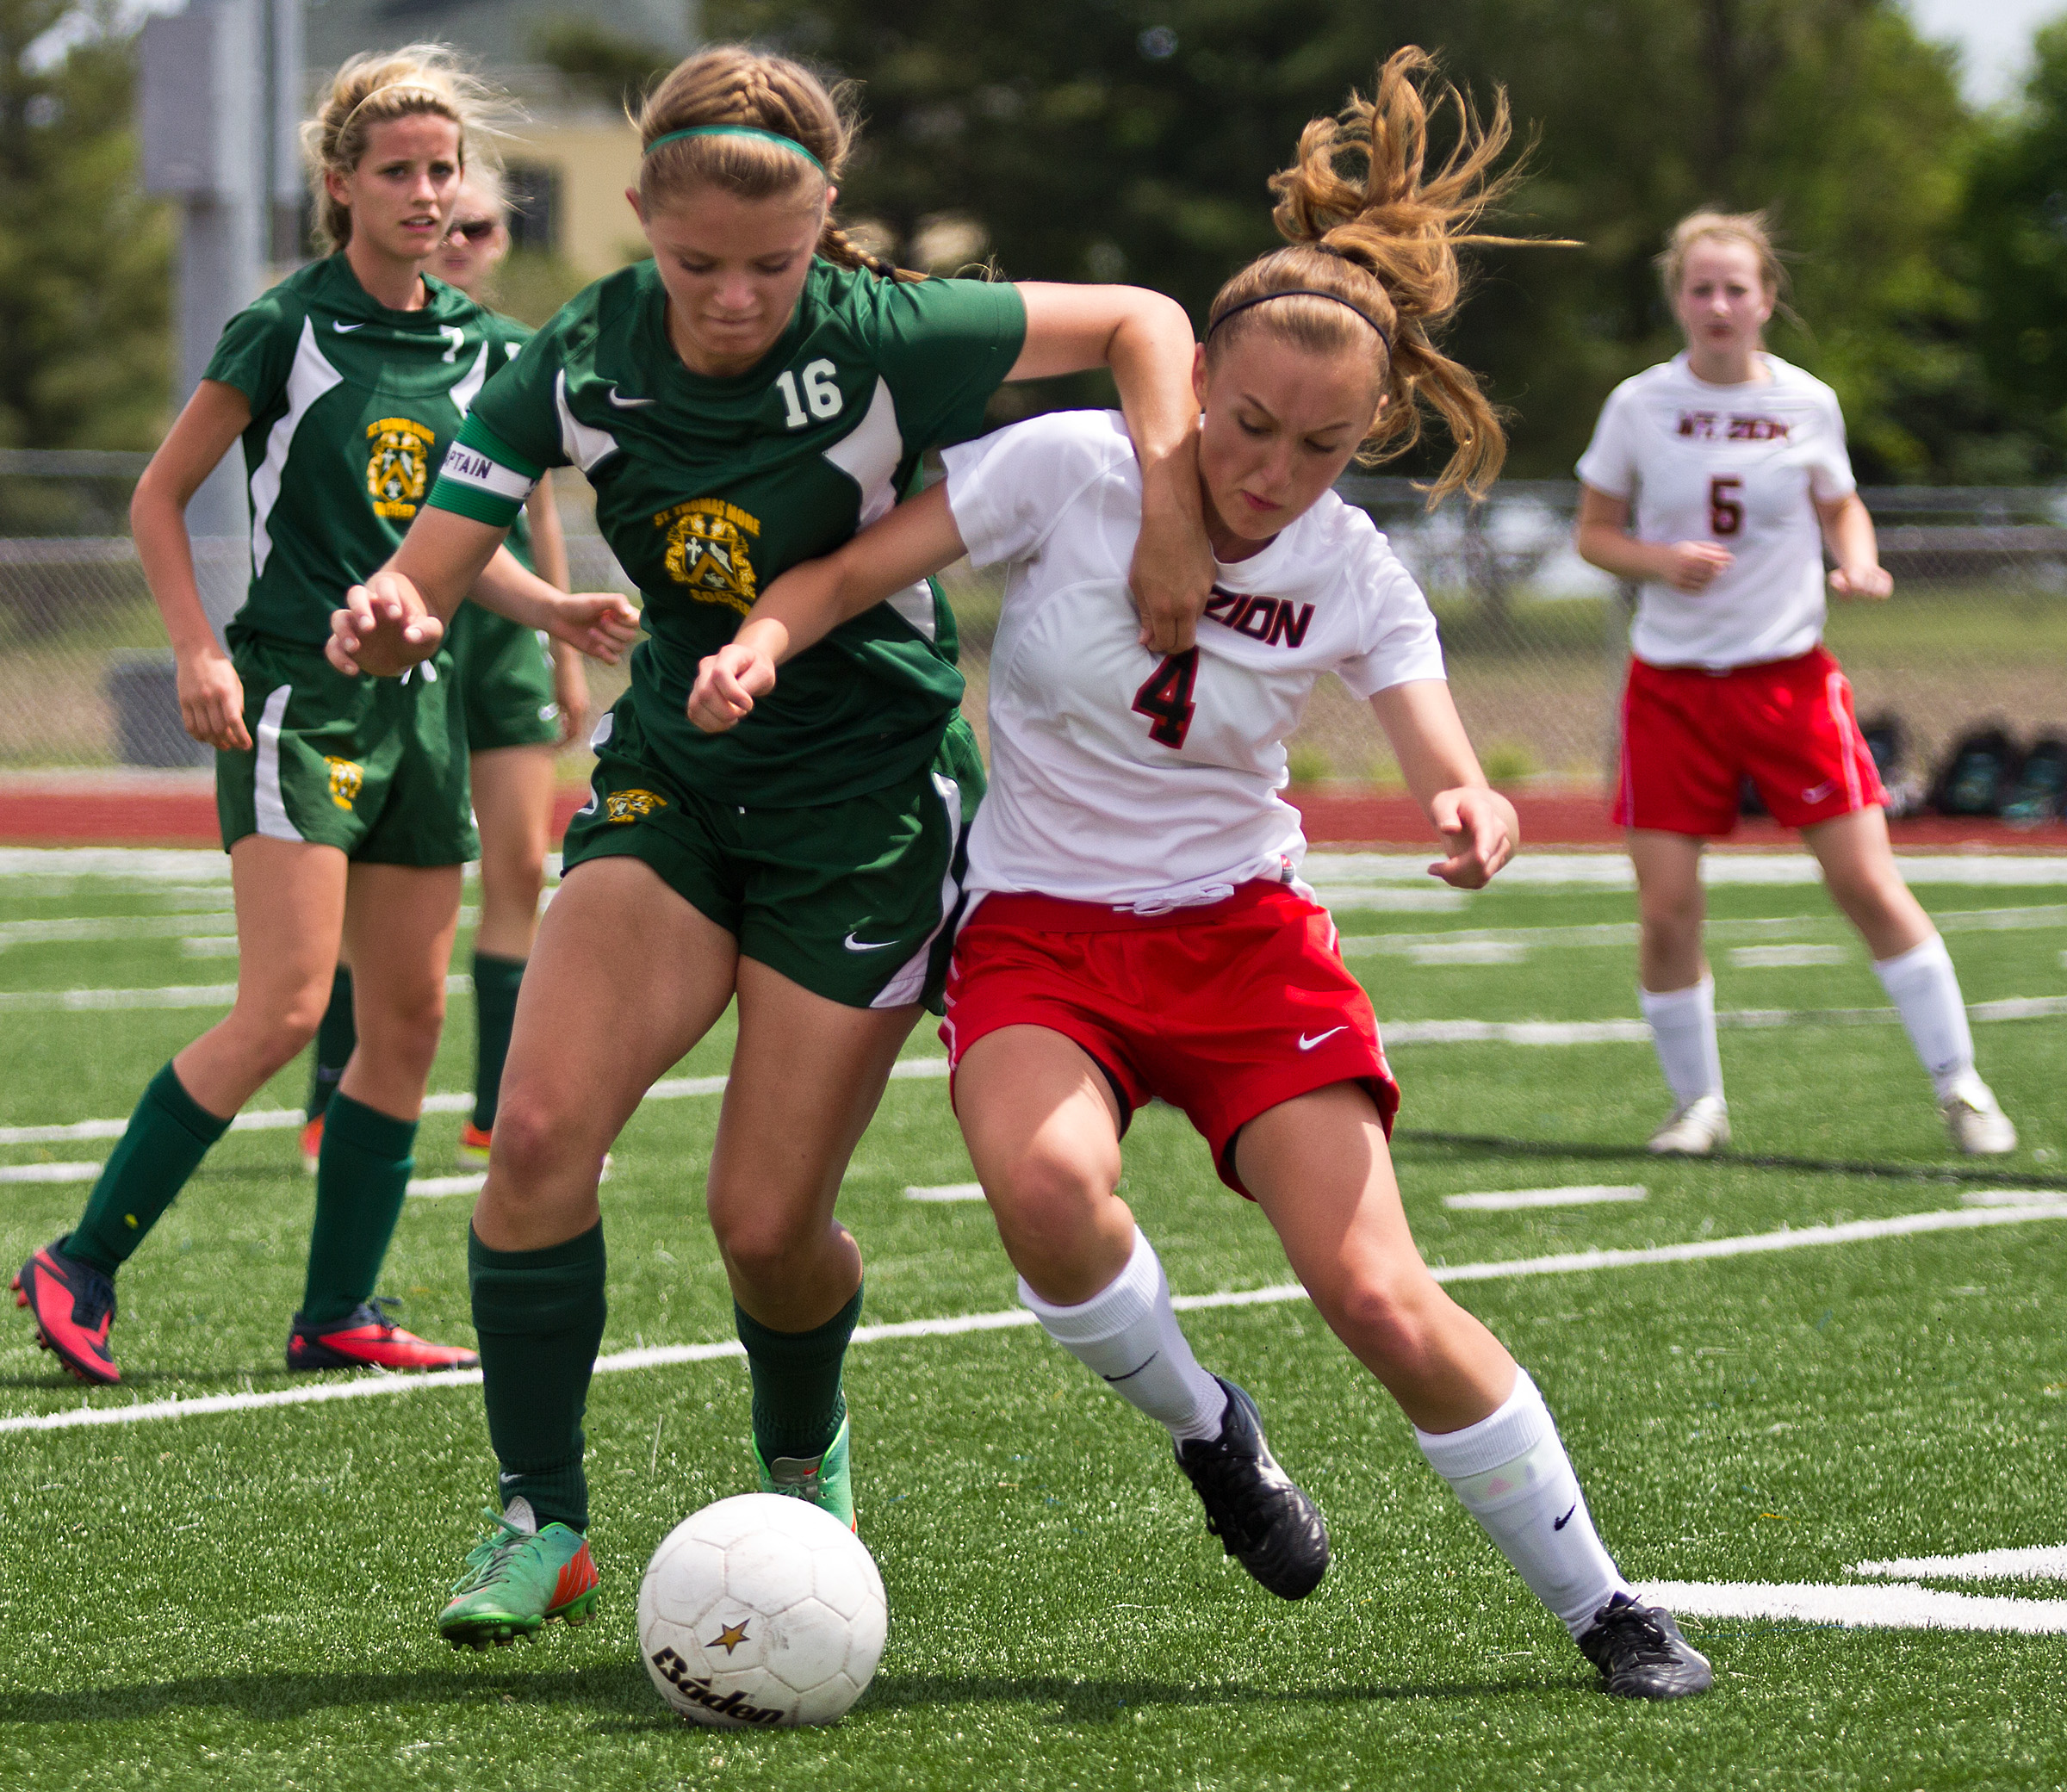 Champaign Saint Thomas More's Michaela Ward, left, and Mount Zion's Morgan Engmann fight for possession during the sectional championship game on May 24 at Walter Boyd Field in Maroa, Ill. The Braves lost to the Sabers 3-2 as Champaign Saint Thomas More claimed their first sectional title in program history.